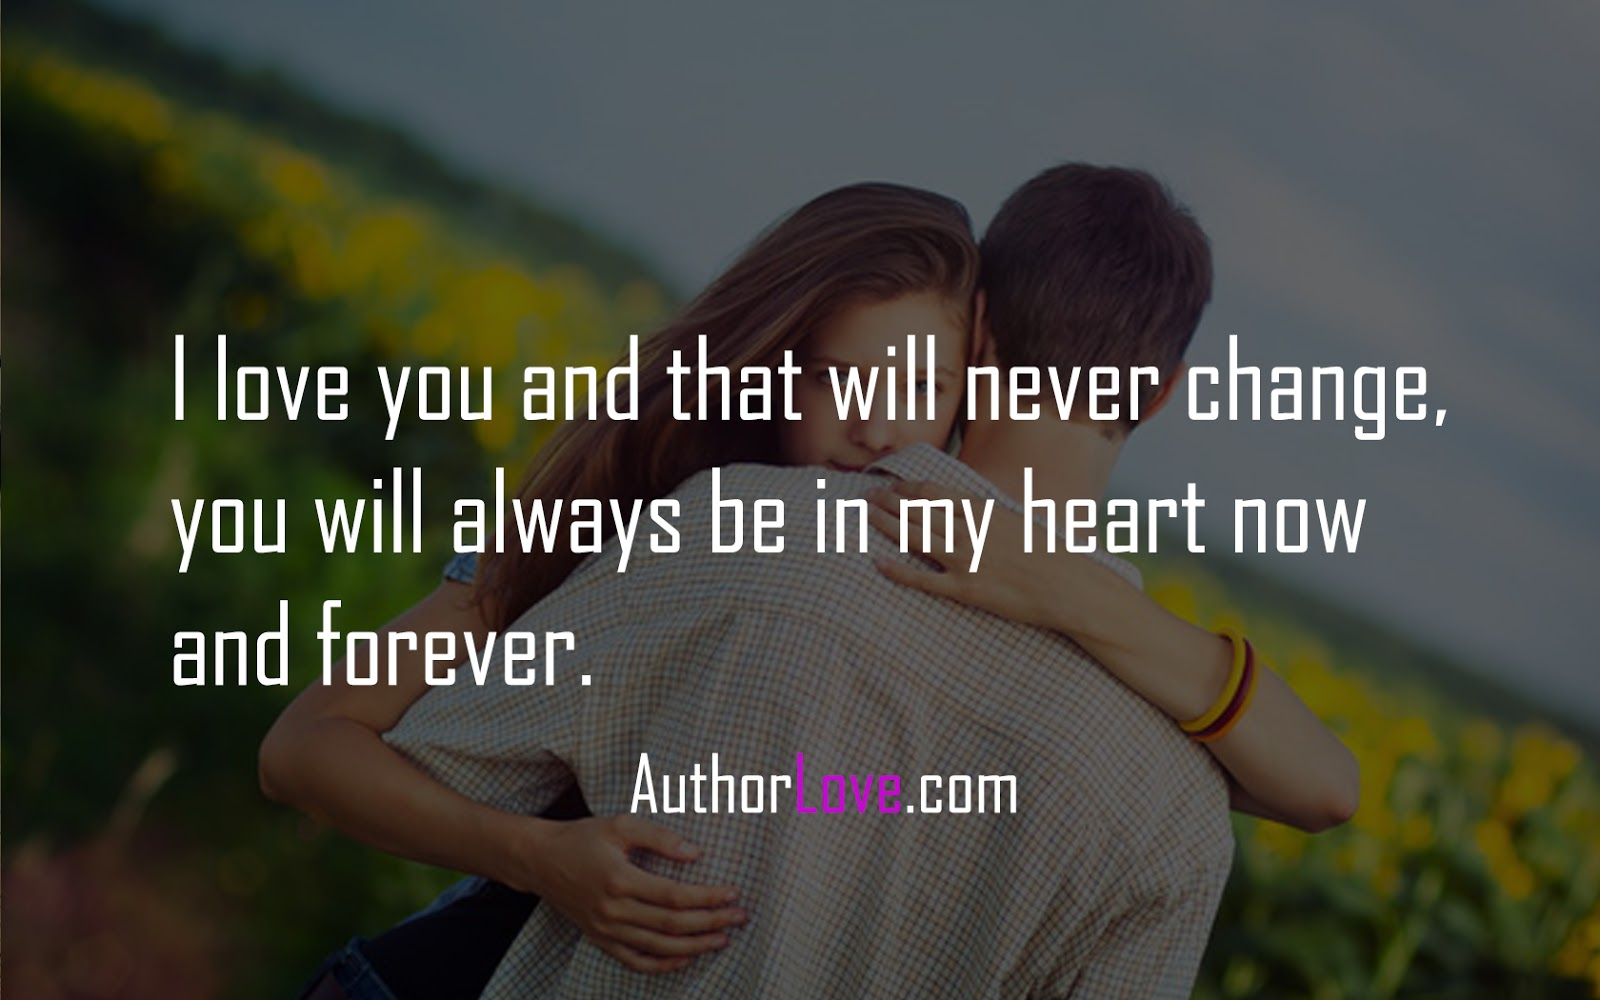 I Love You And That Will Never Change Love Quotes Author Love